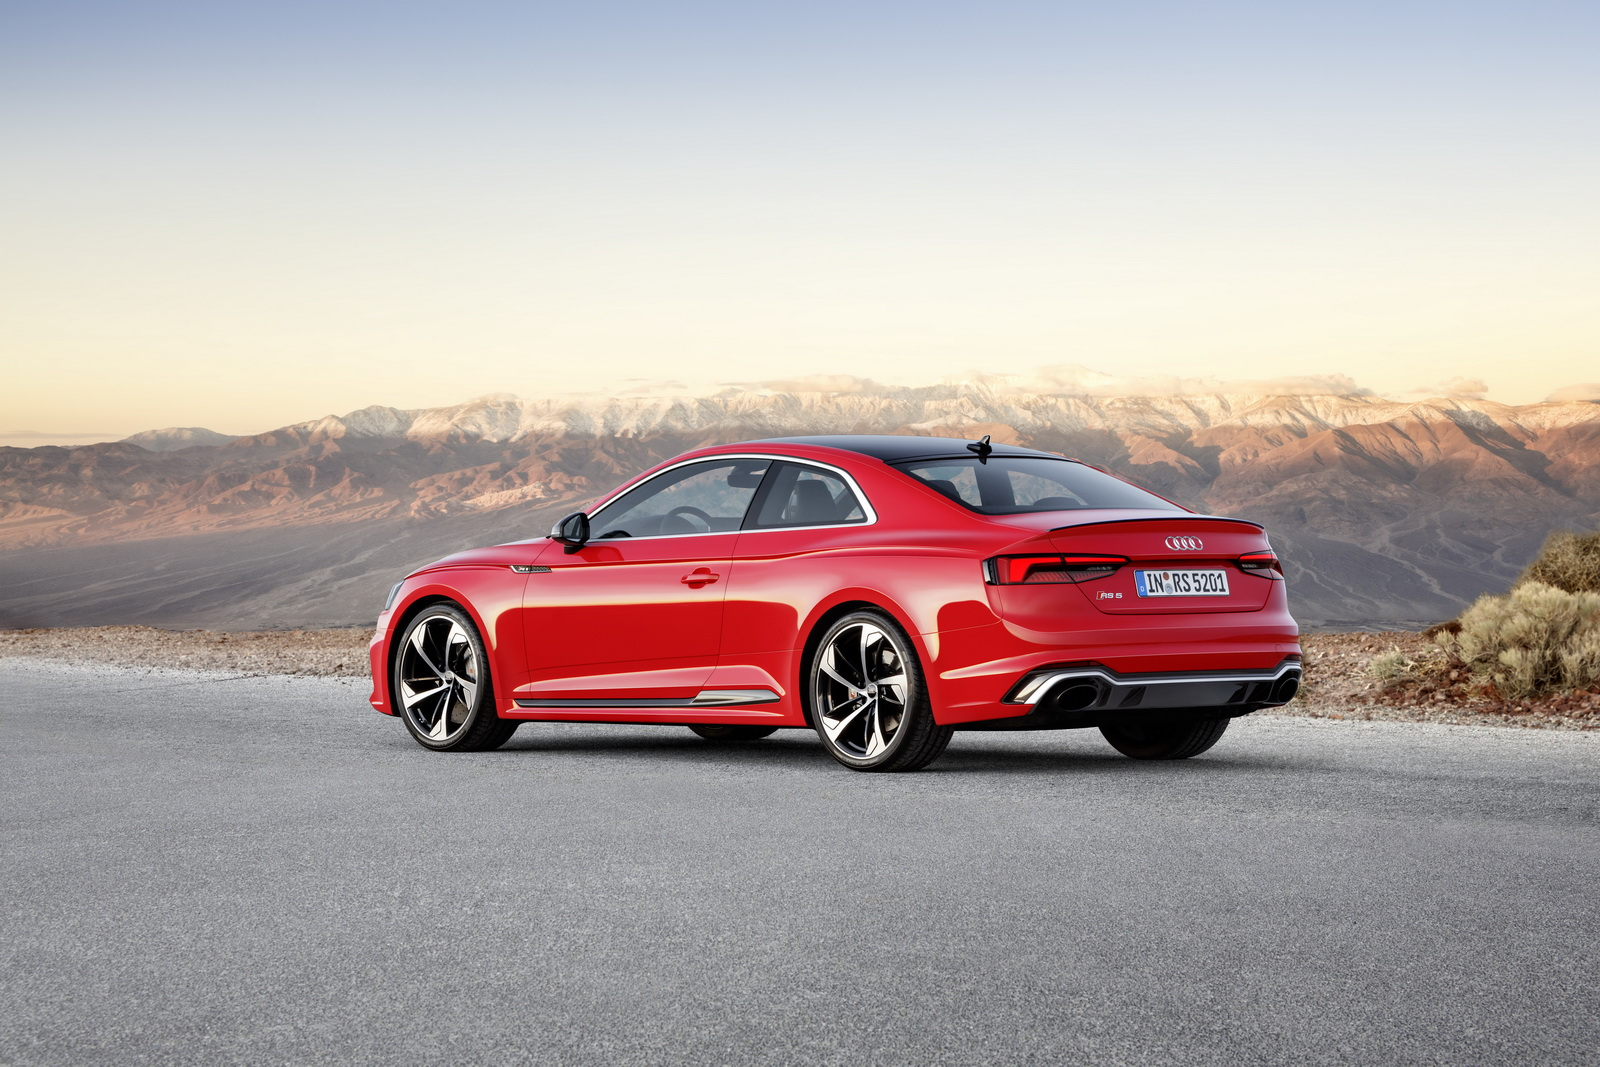 2017 Audi RS5 Coupe Launched In Europe, Priced From €80,900